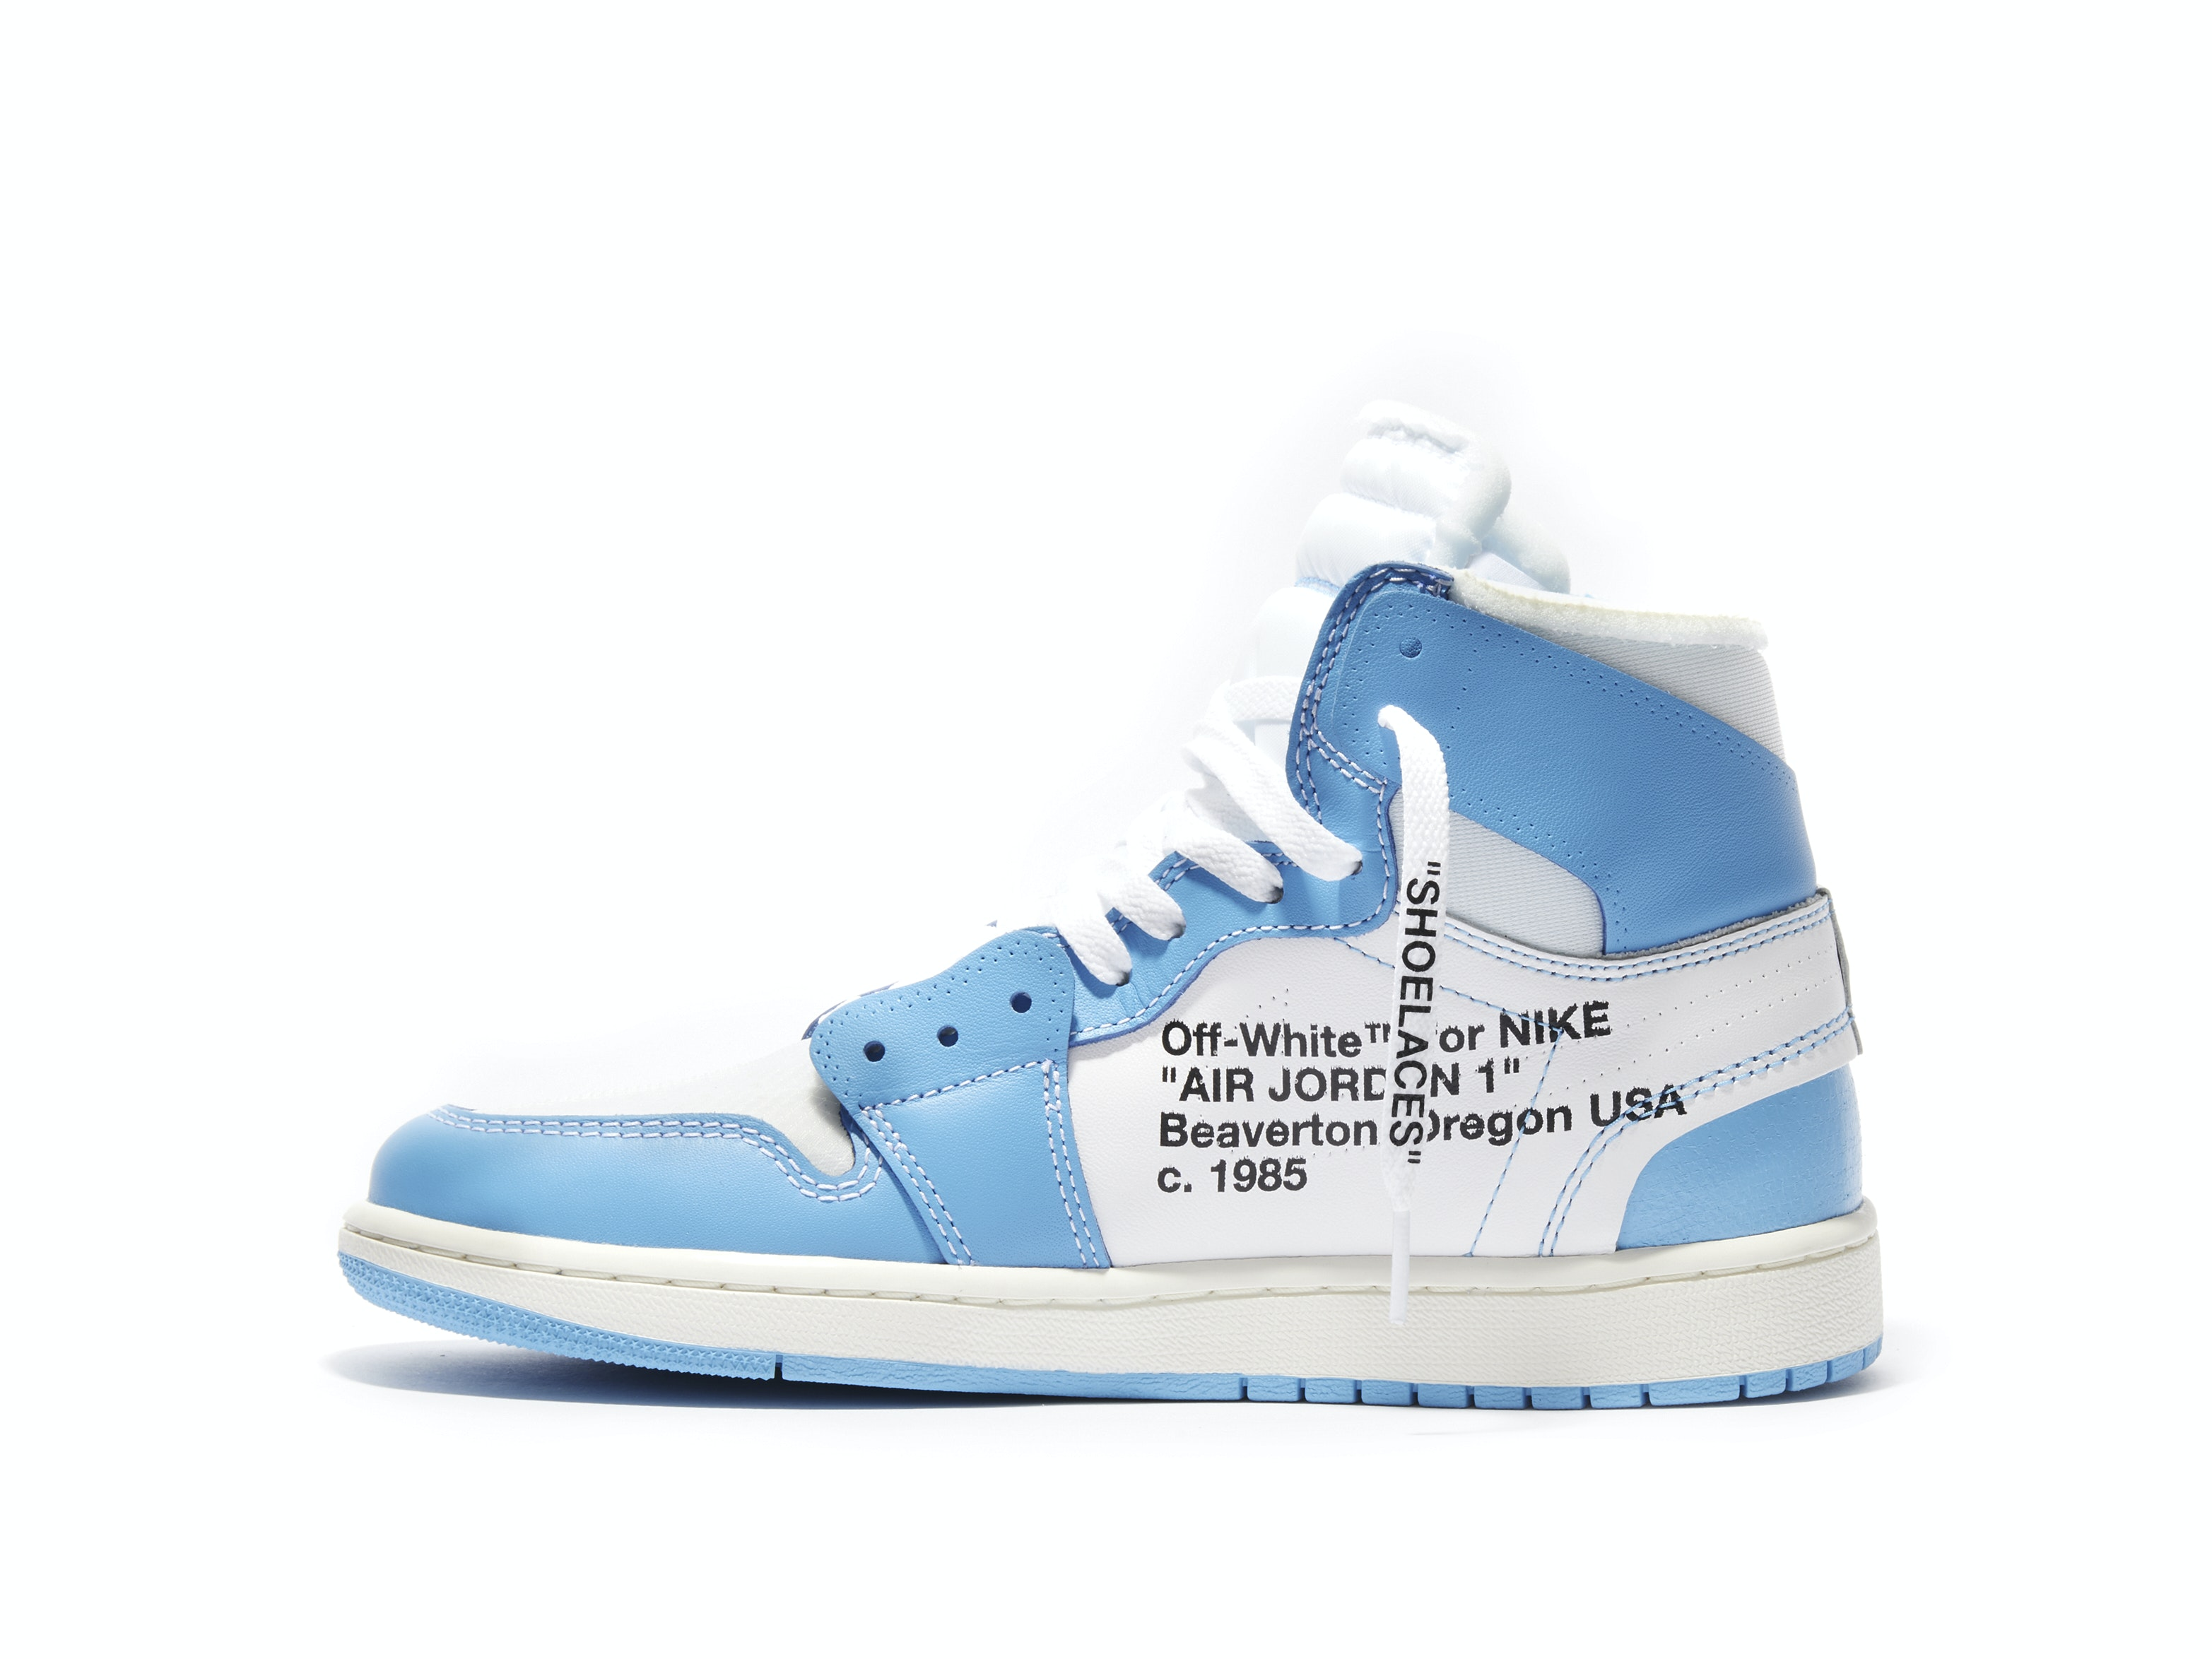 separation shoes bac92 ed640 Air Jordan 1 Retro High UNC x Off-White. 100% AuthenticAvg Delivery Time  1-2  days